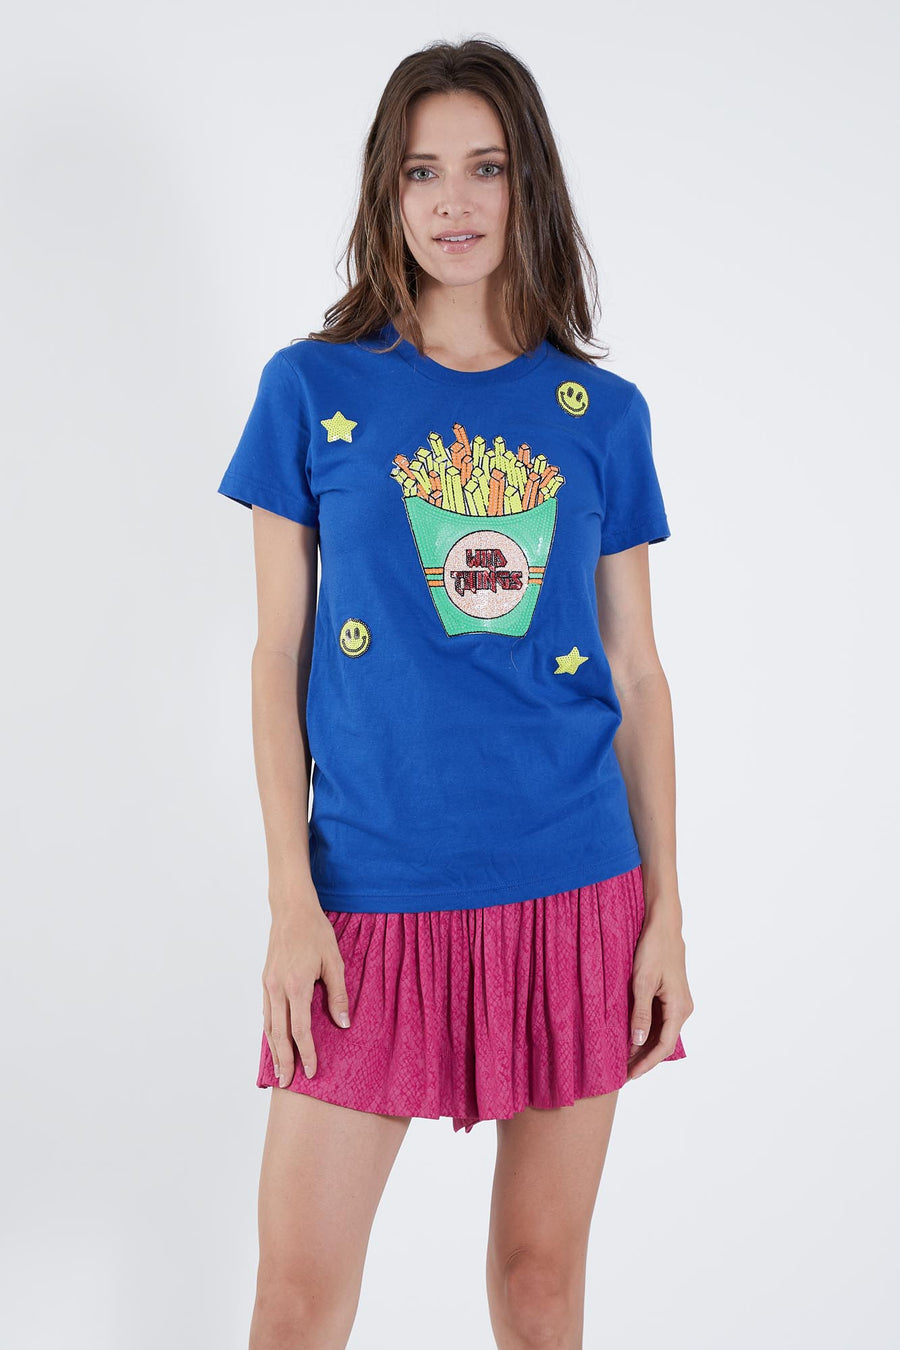 LUCY T-SHIRT BLUE WILD FRIES